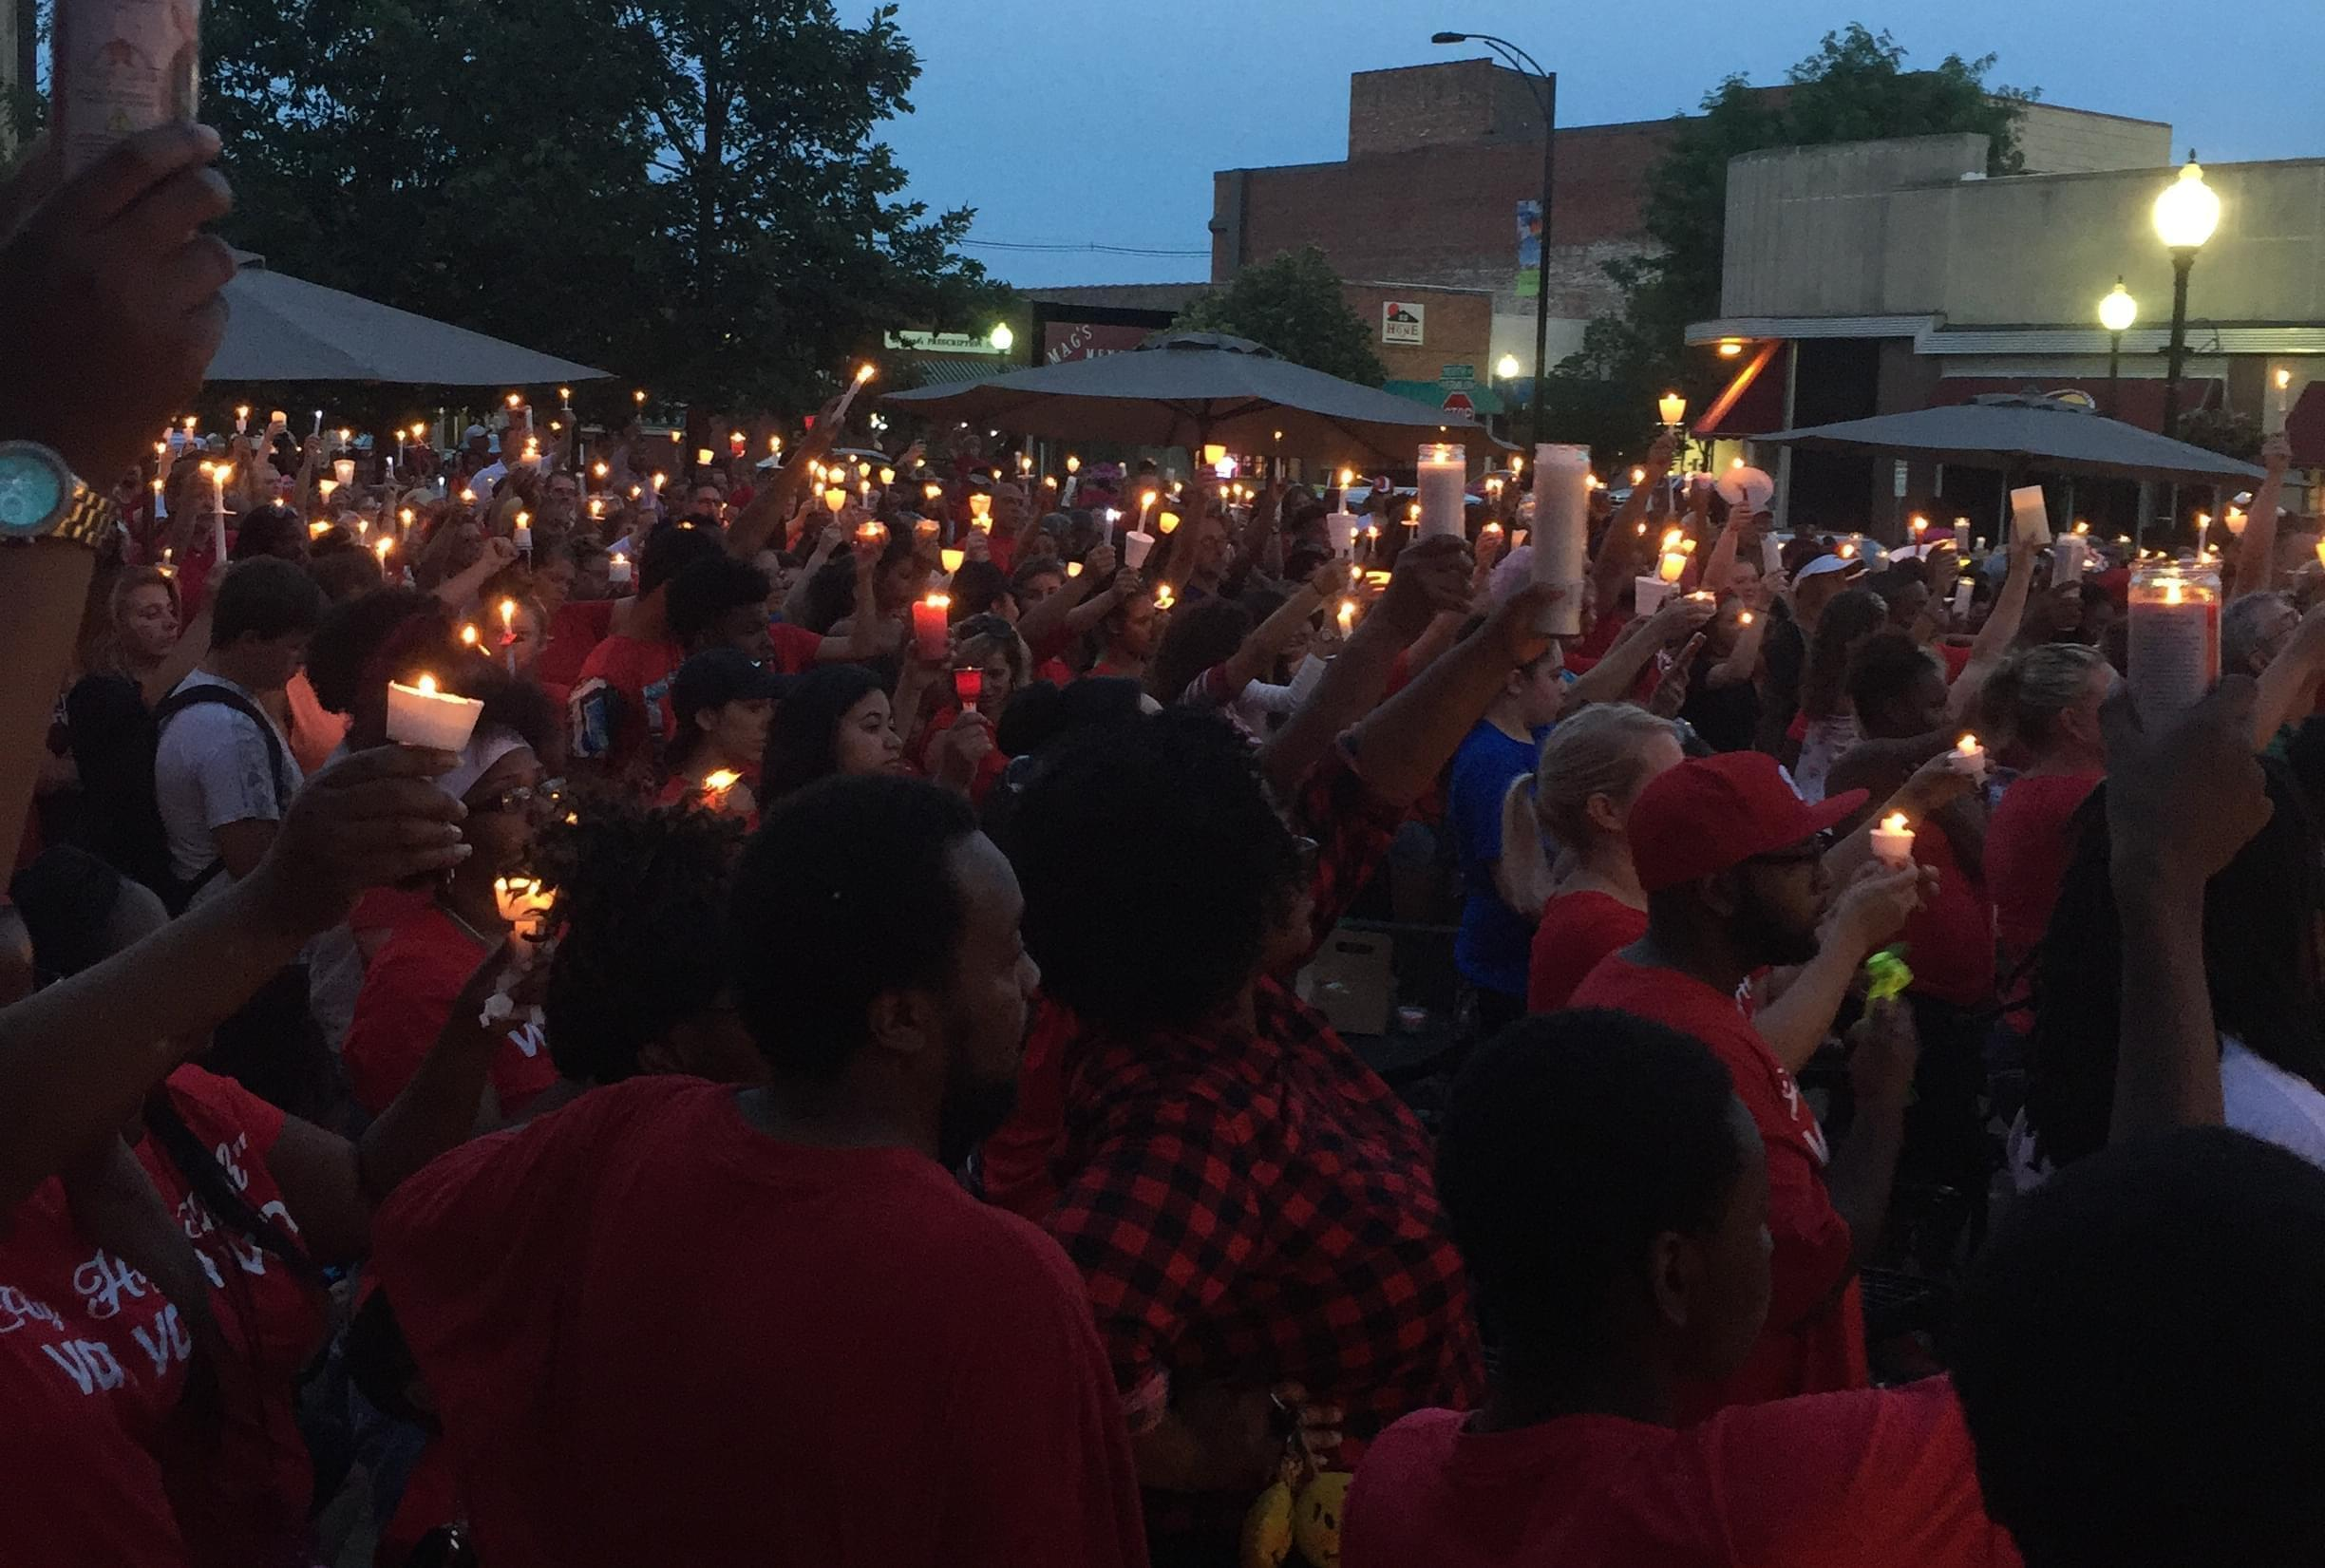 Hundreds of people raise up lit candles at a memorial vigil for Devon McClyde.